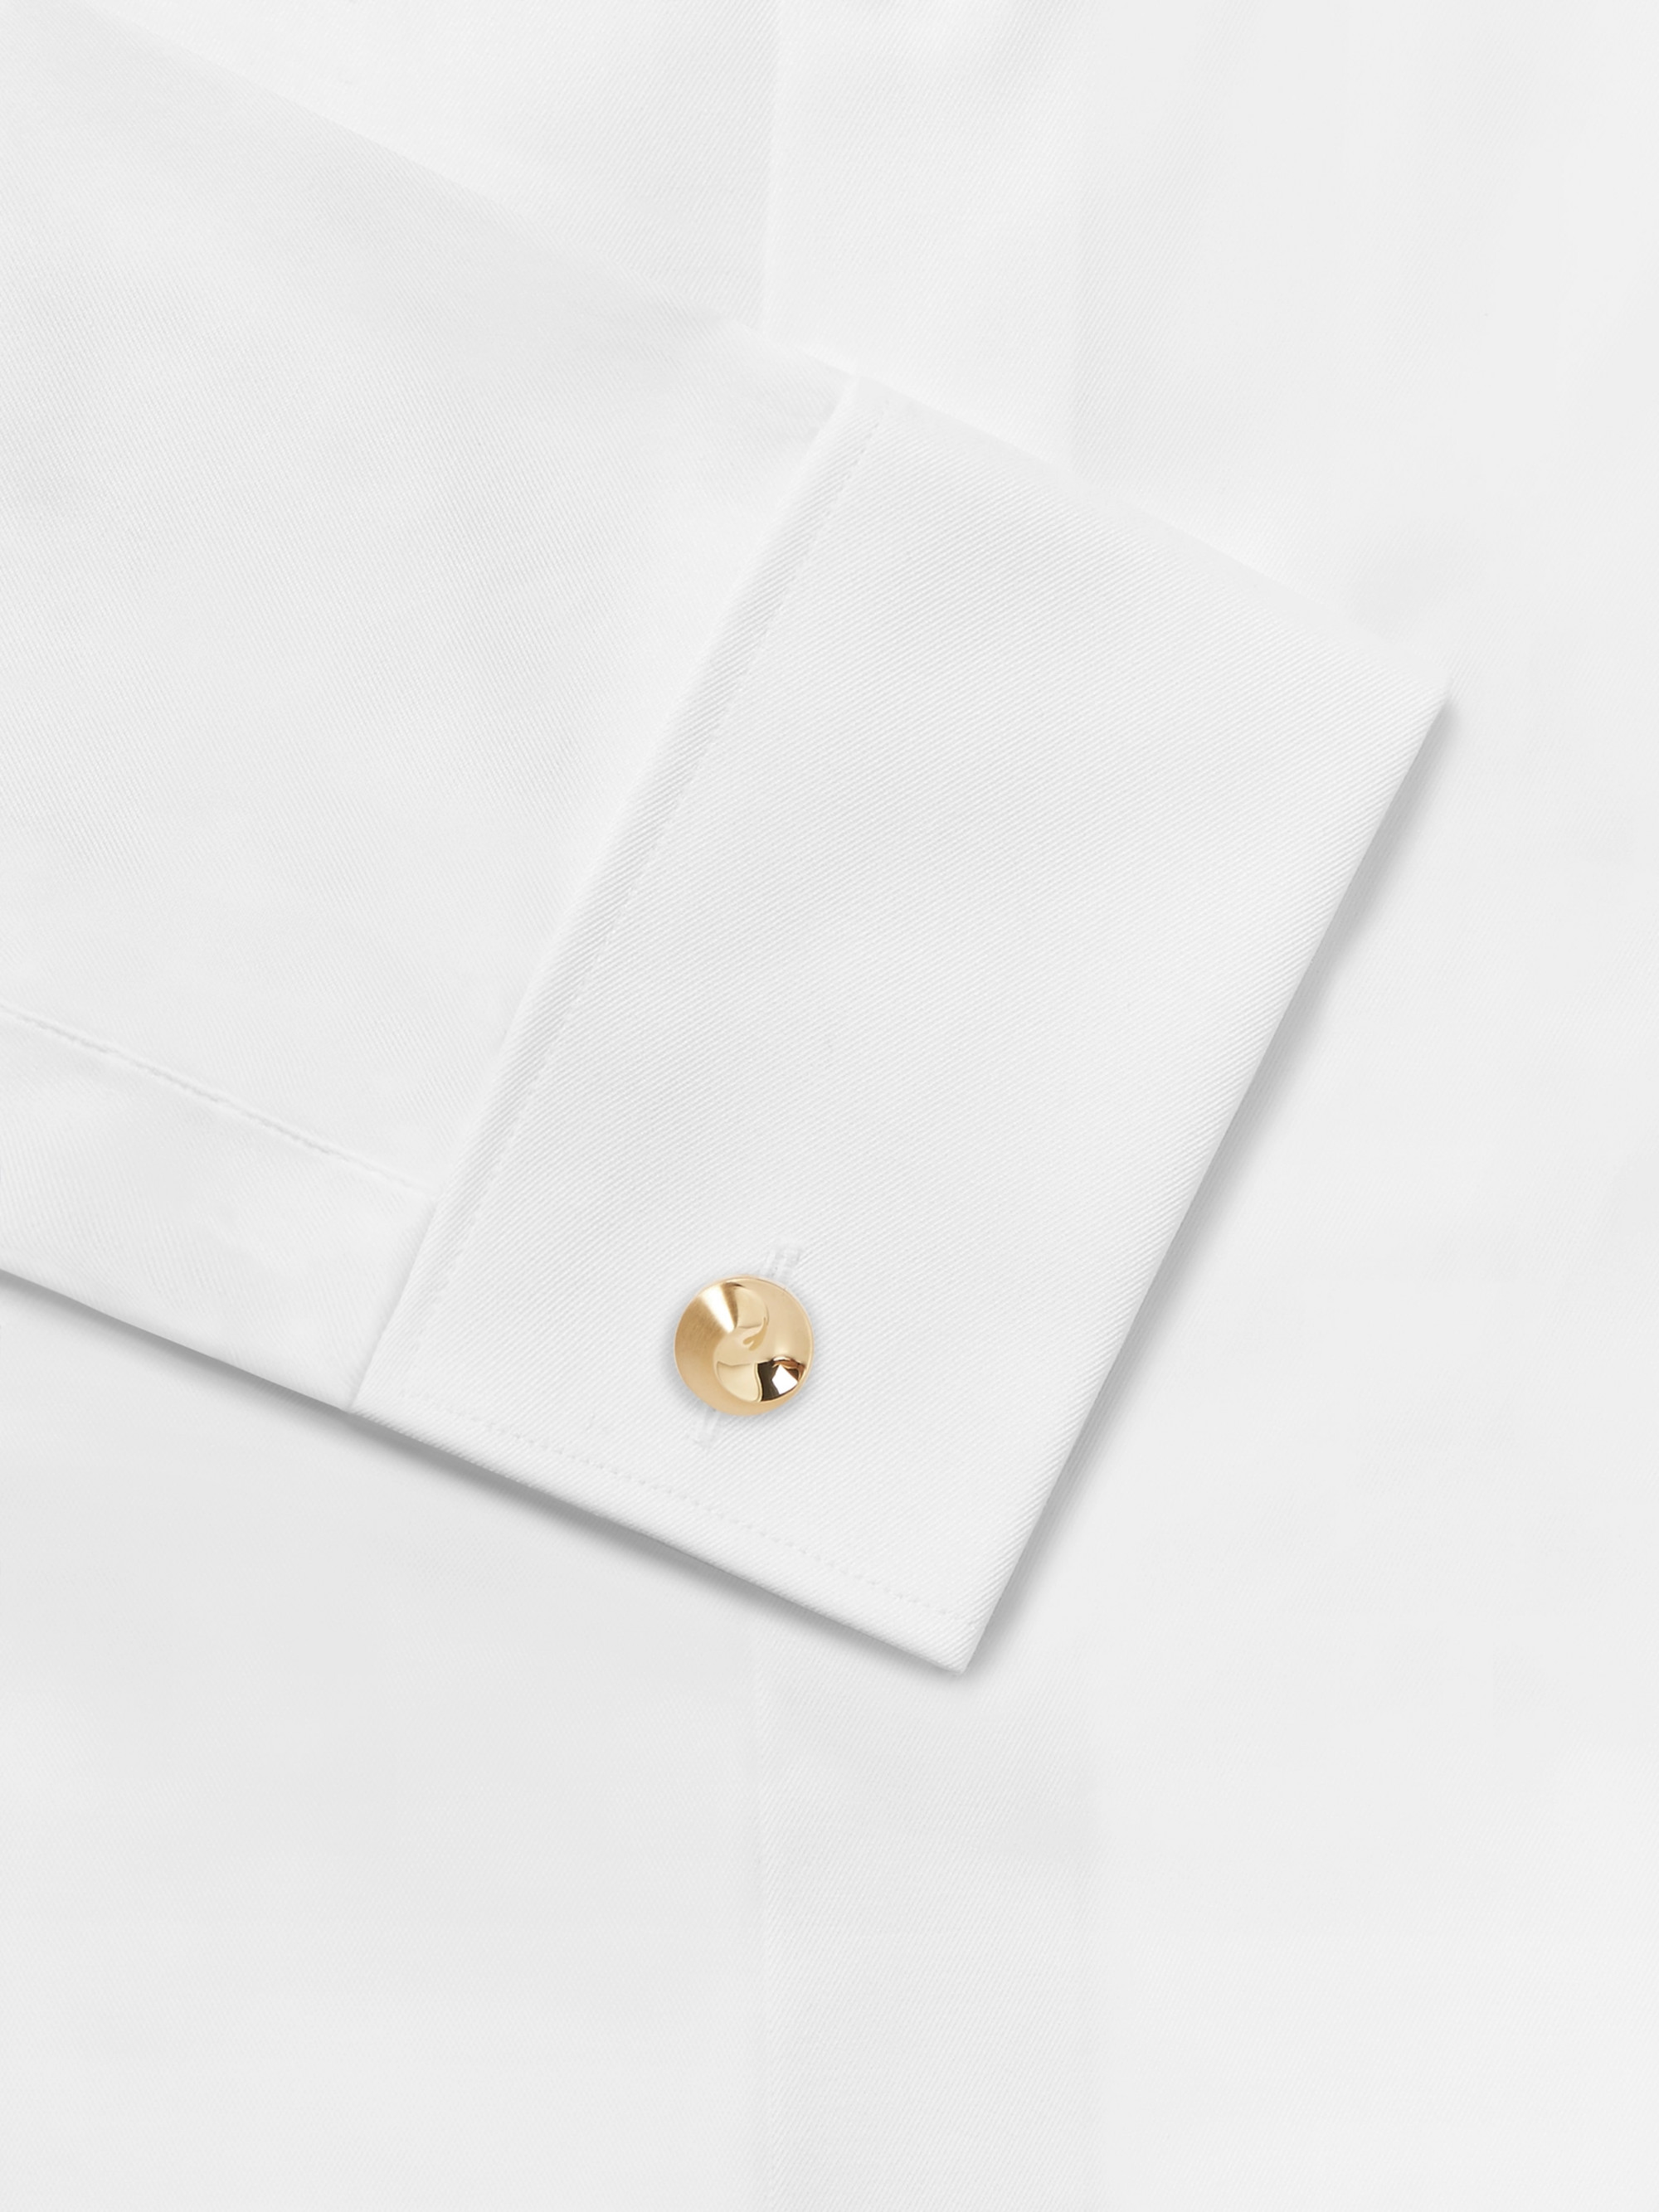 Lanvin Gold-Plated Cufflinks